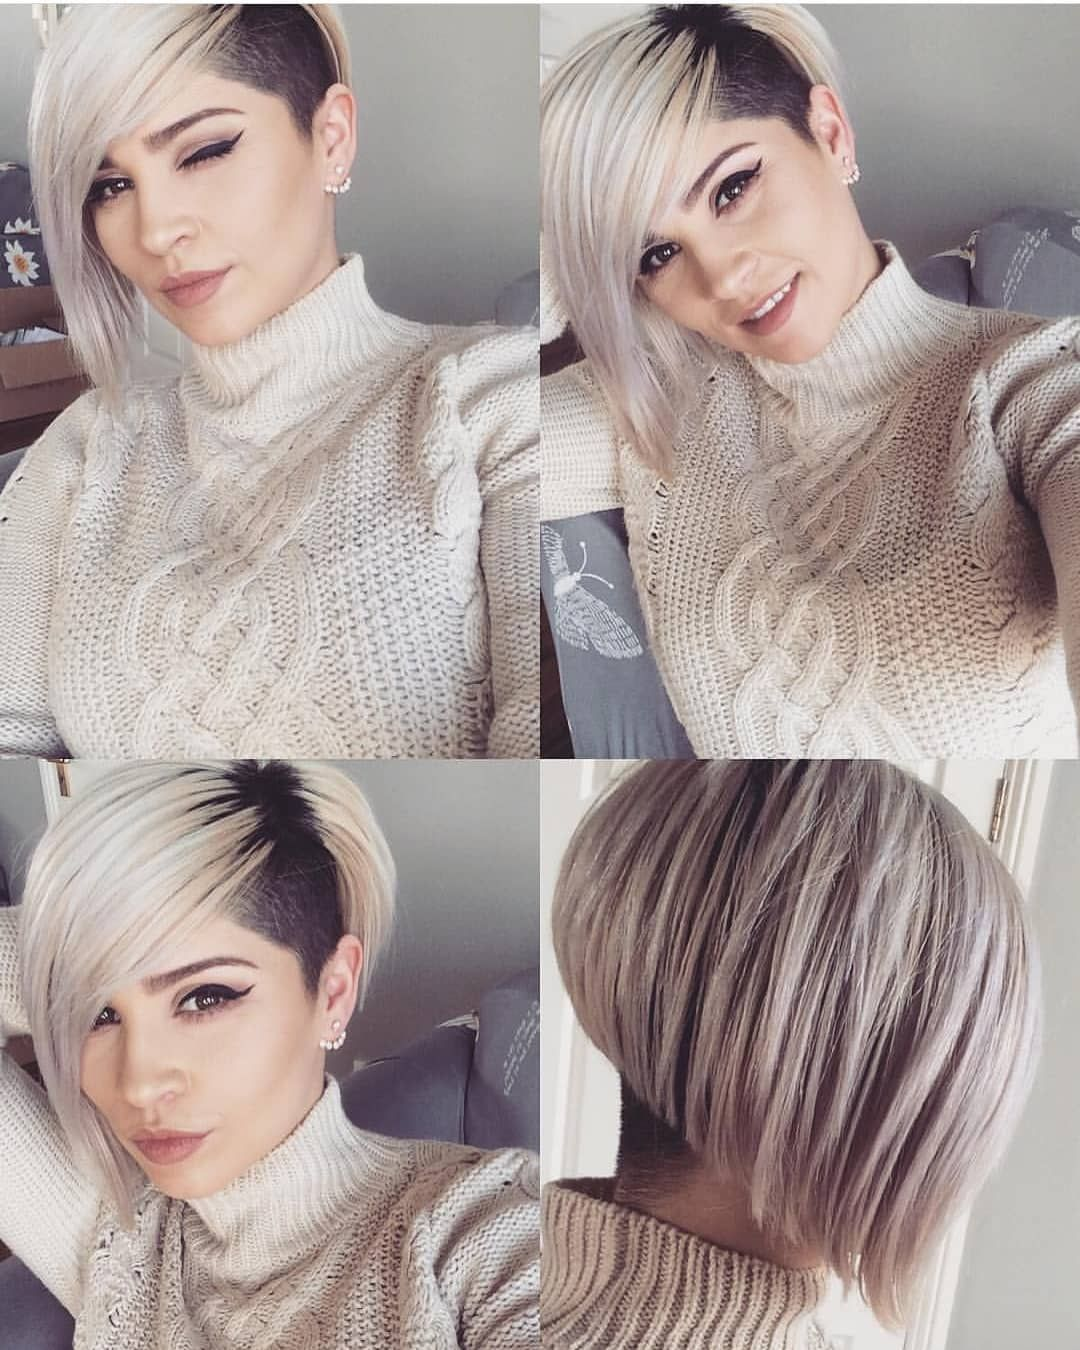 Short Hair Pixiecut Undercut On Instagram Model Lenna Kf Bobhaircut Sidecut Shavednape Ucfee Short Hair Styles Short Pixie Haircuts Hair Styles